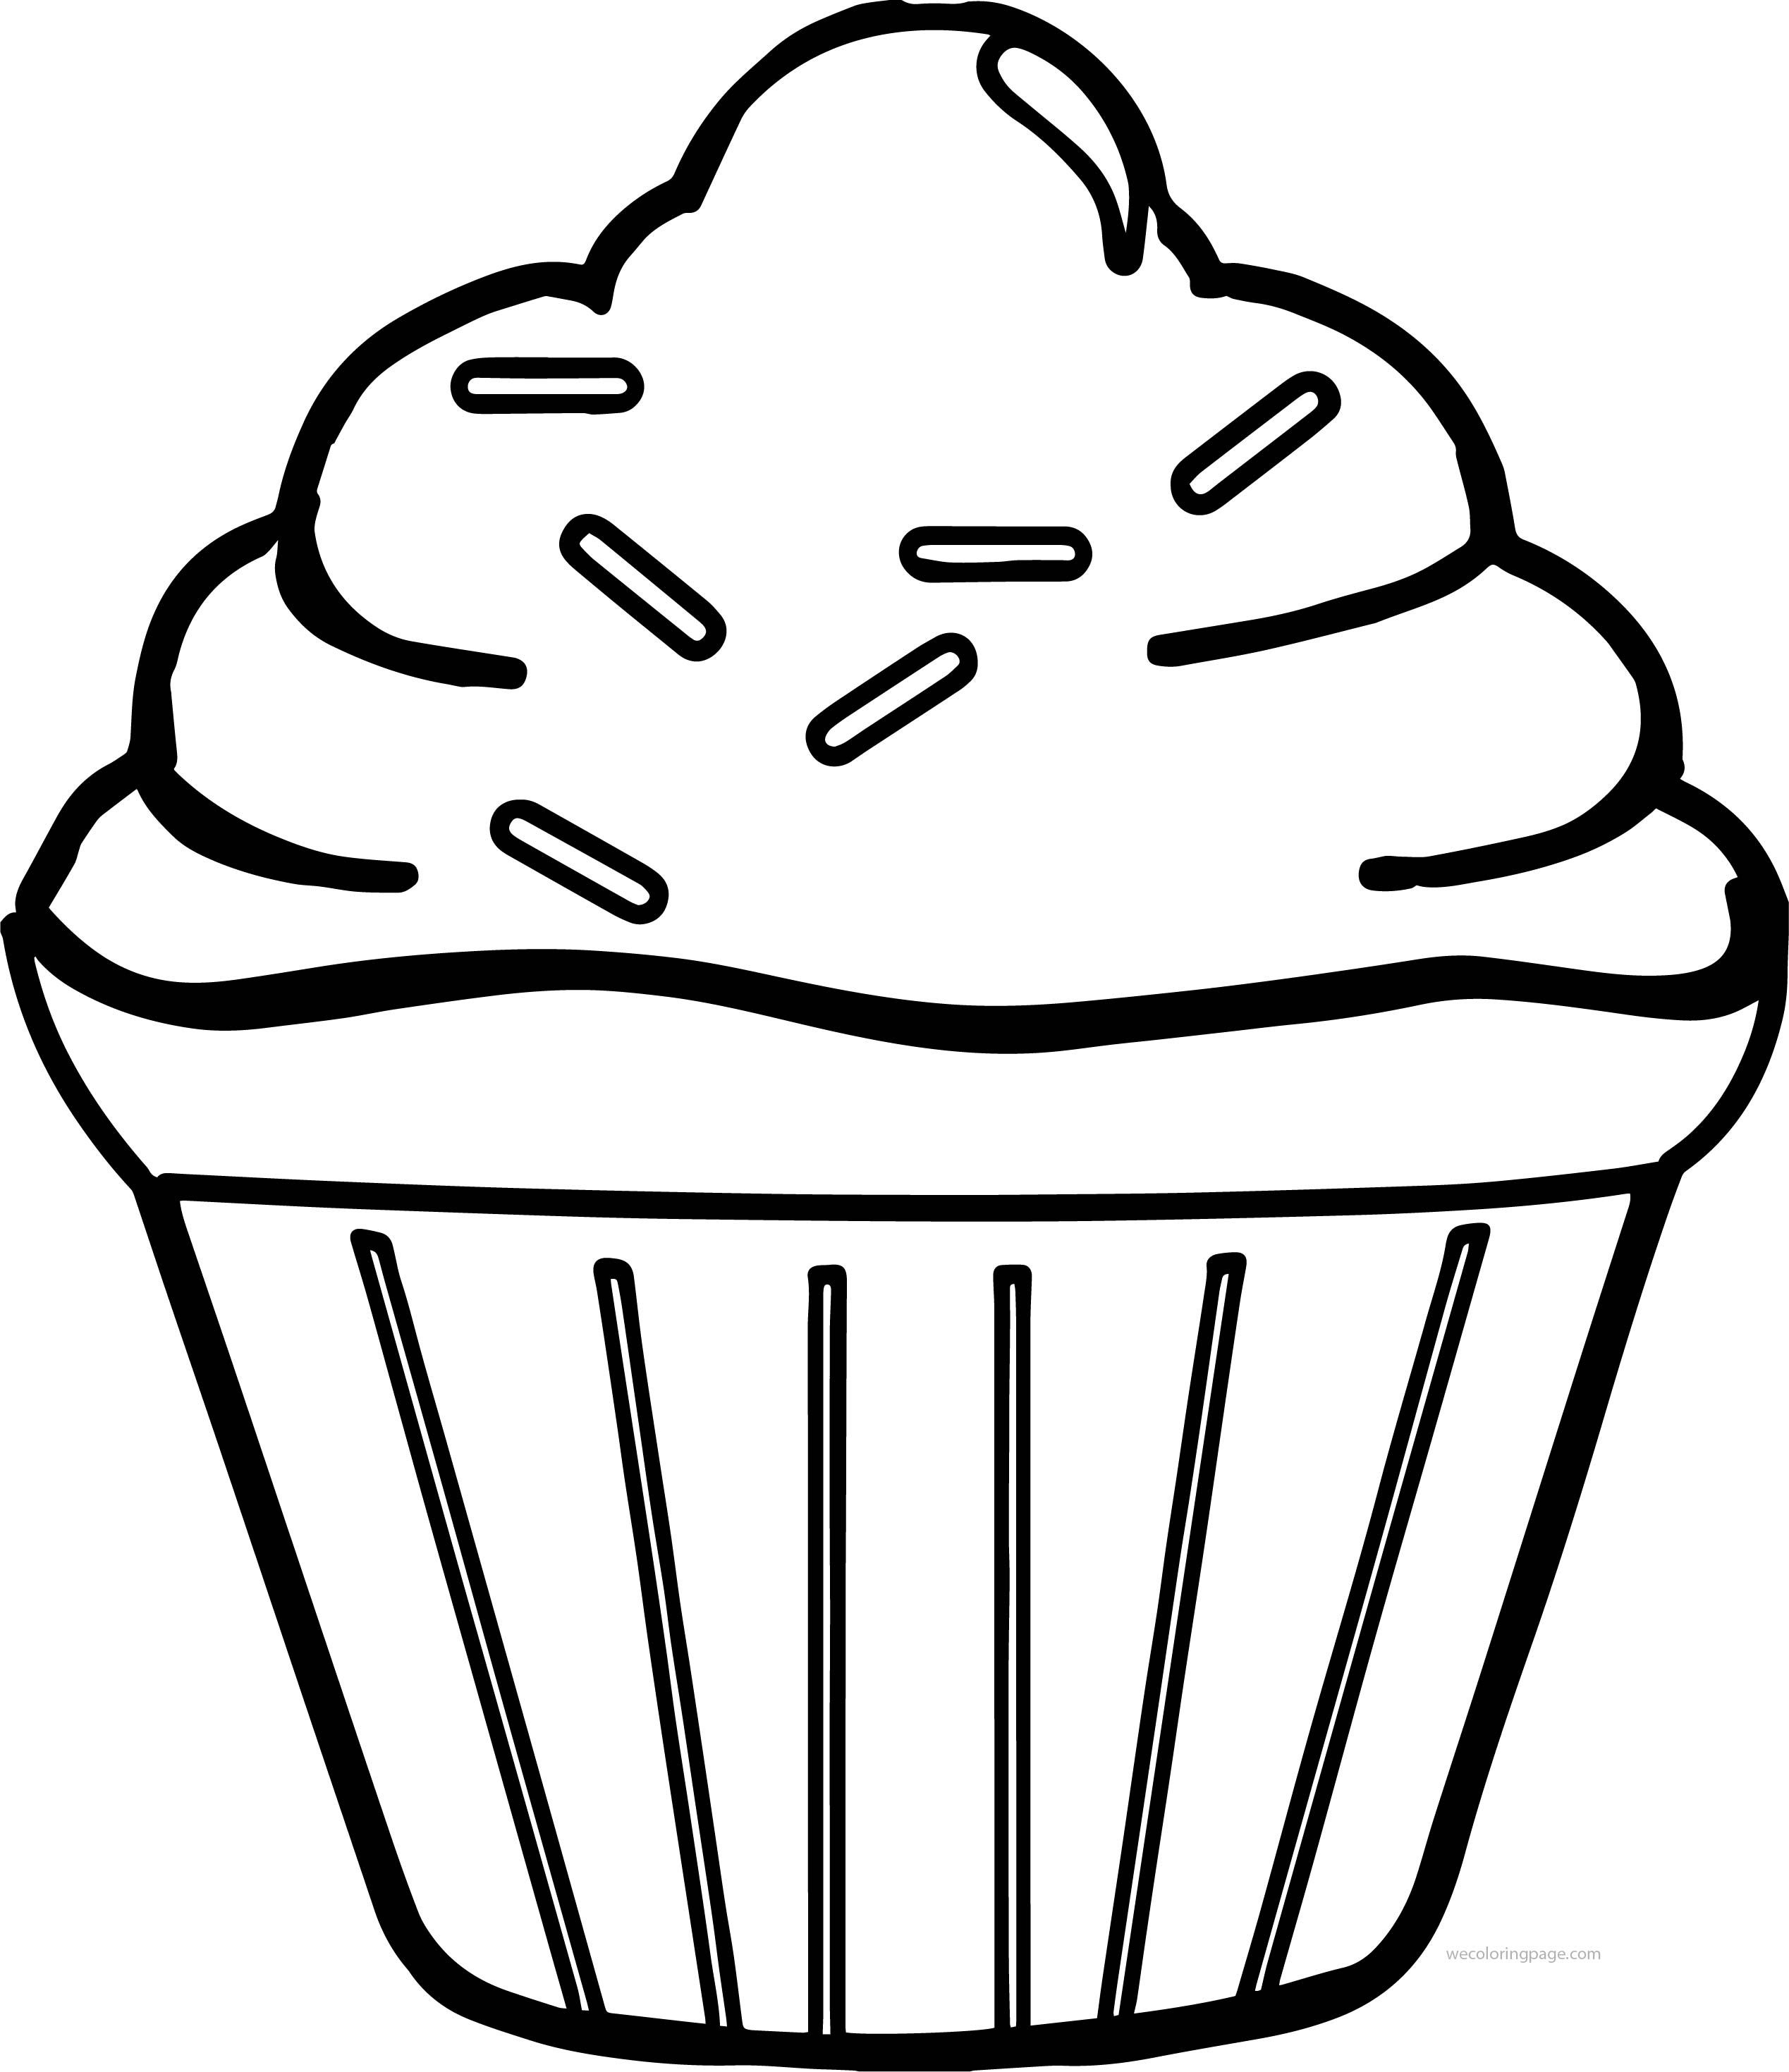 Cool Simple Cupcake Coloring Page Cupcake Coloring Pages Easy